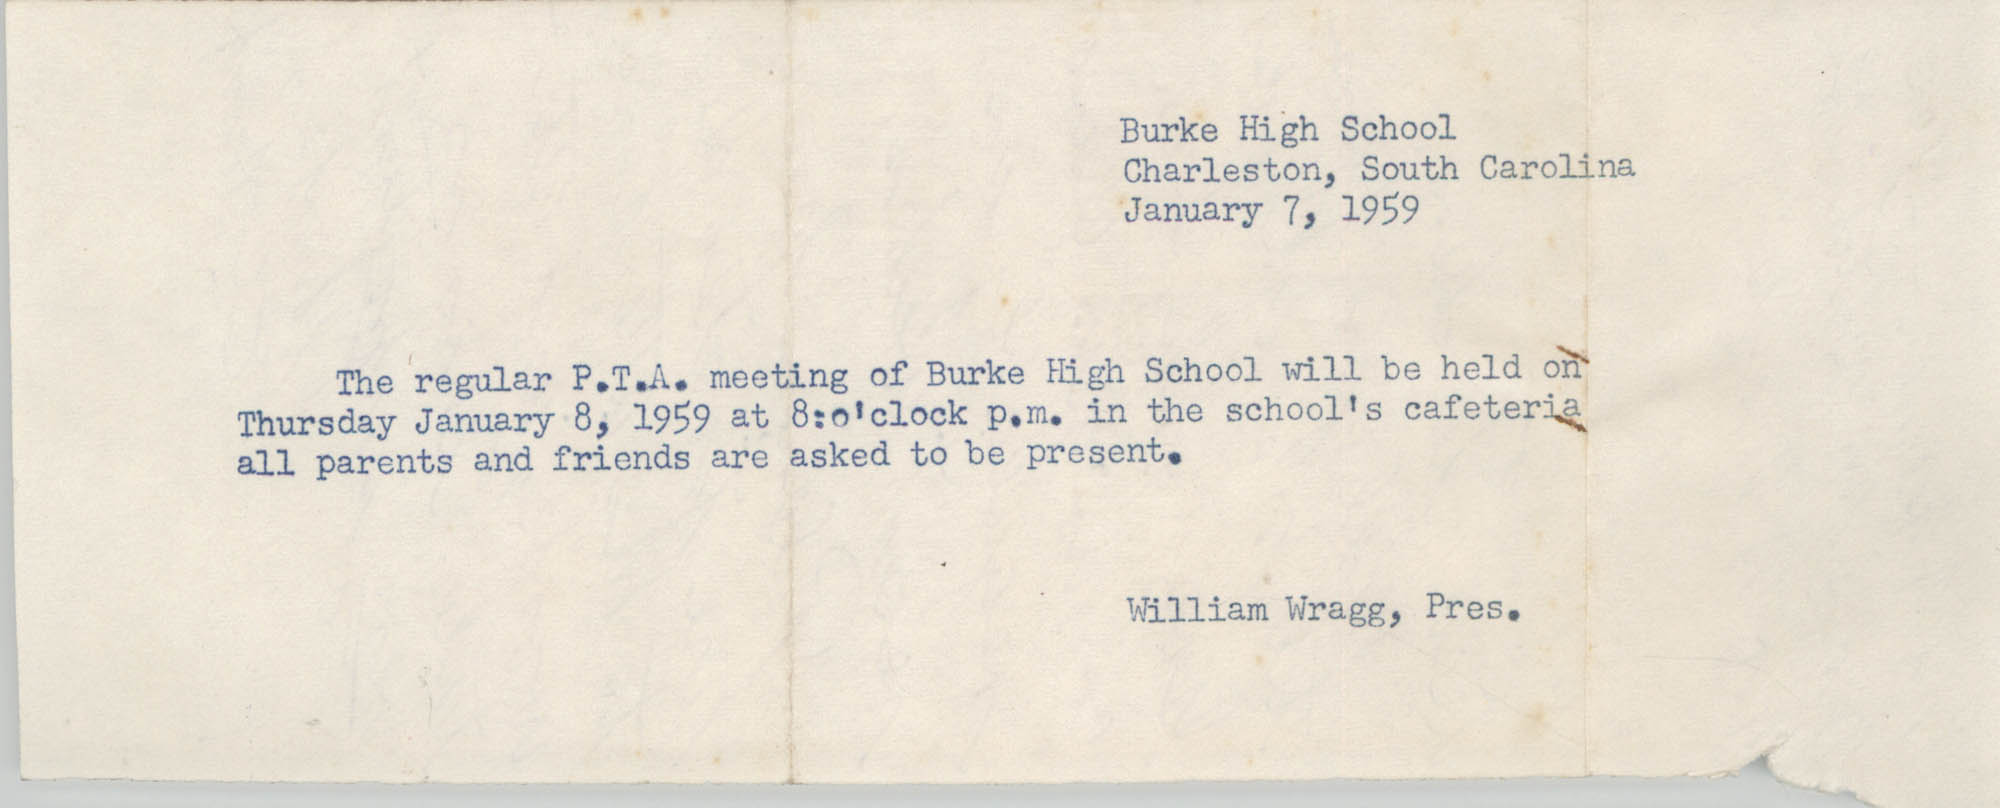 Burke High School Memorandum, January 7, 1959